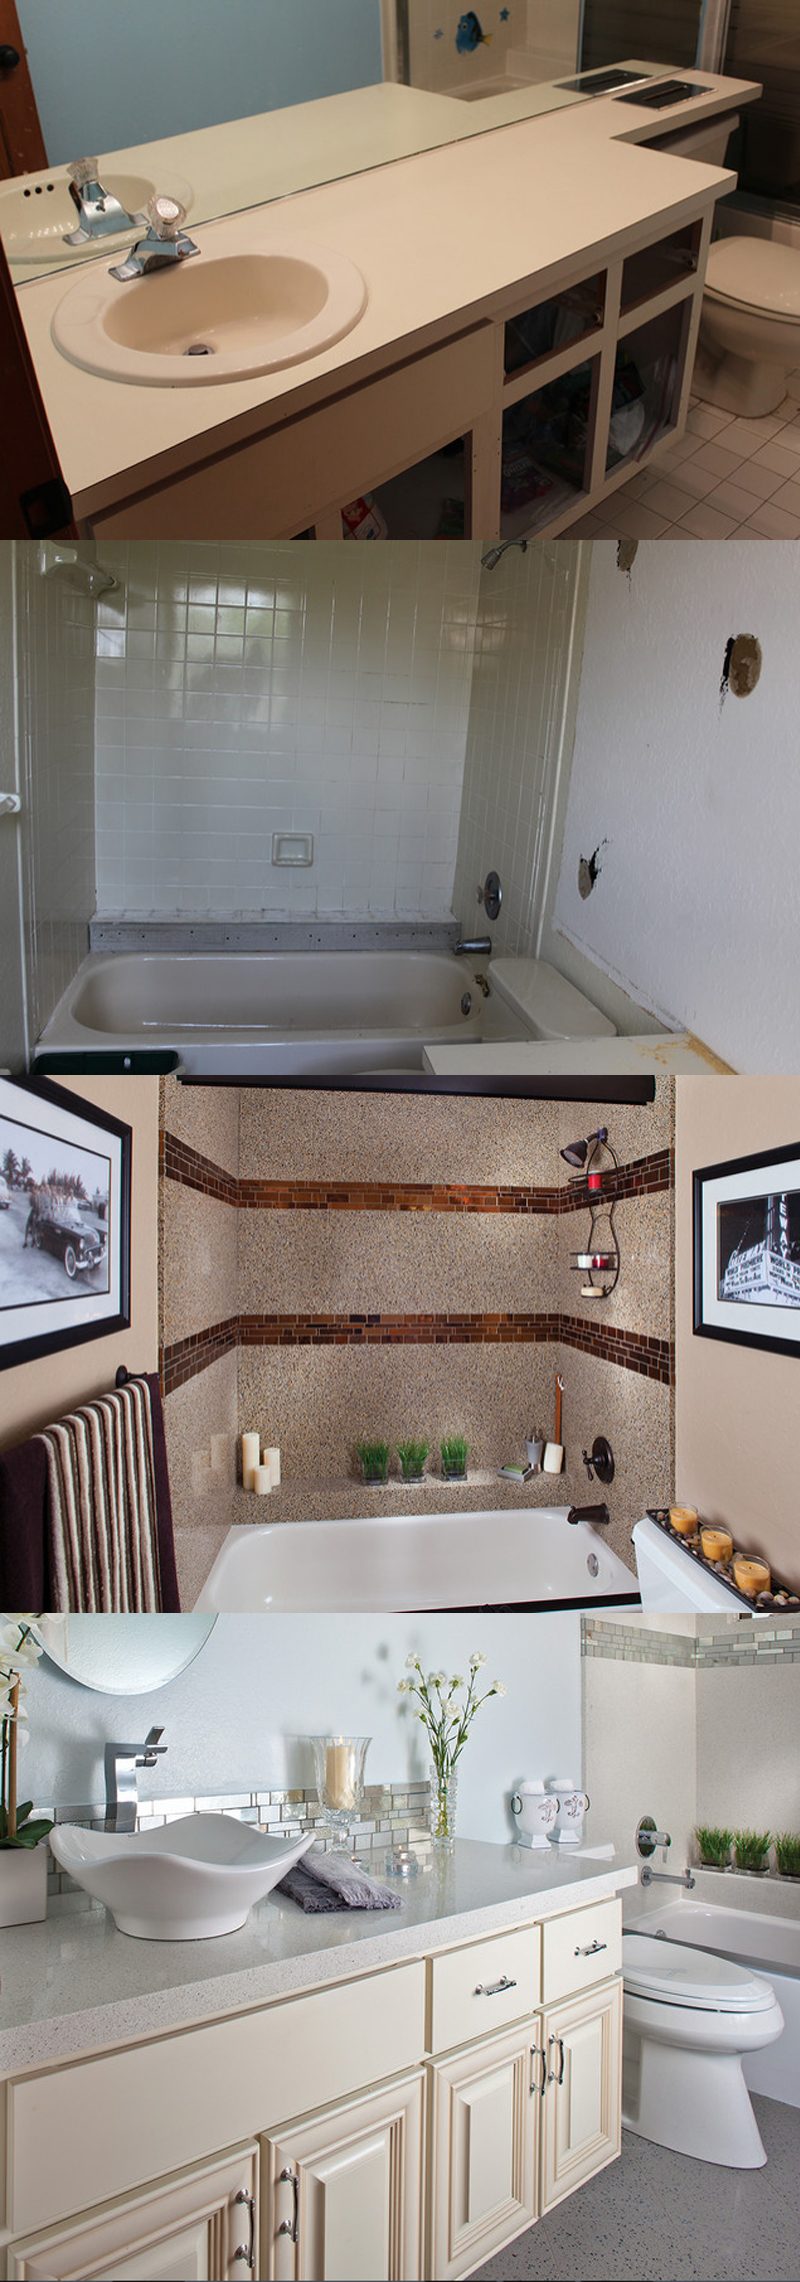 simple bathroom makeover ideas